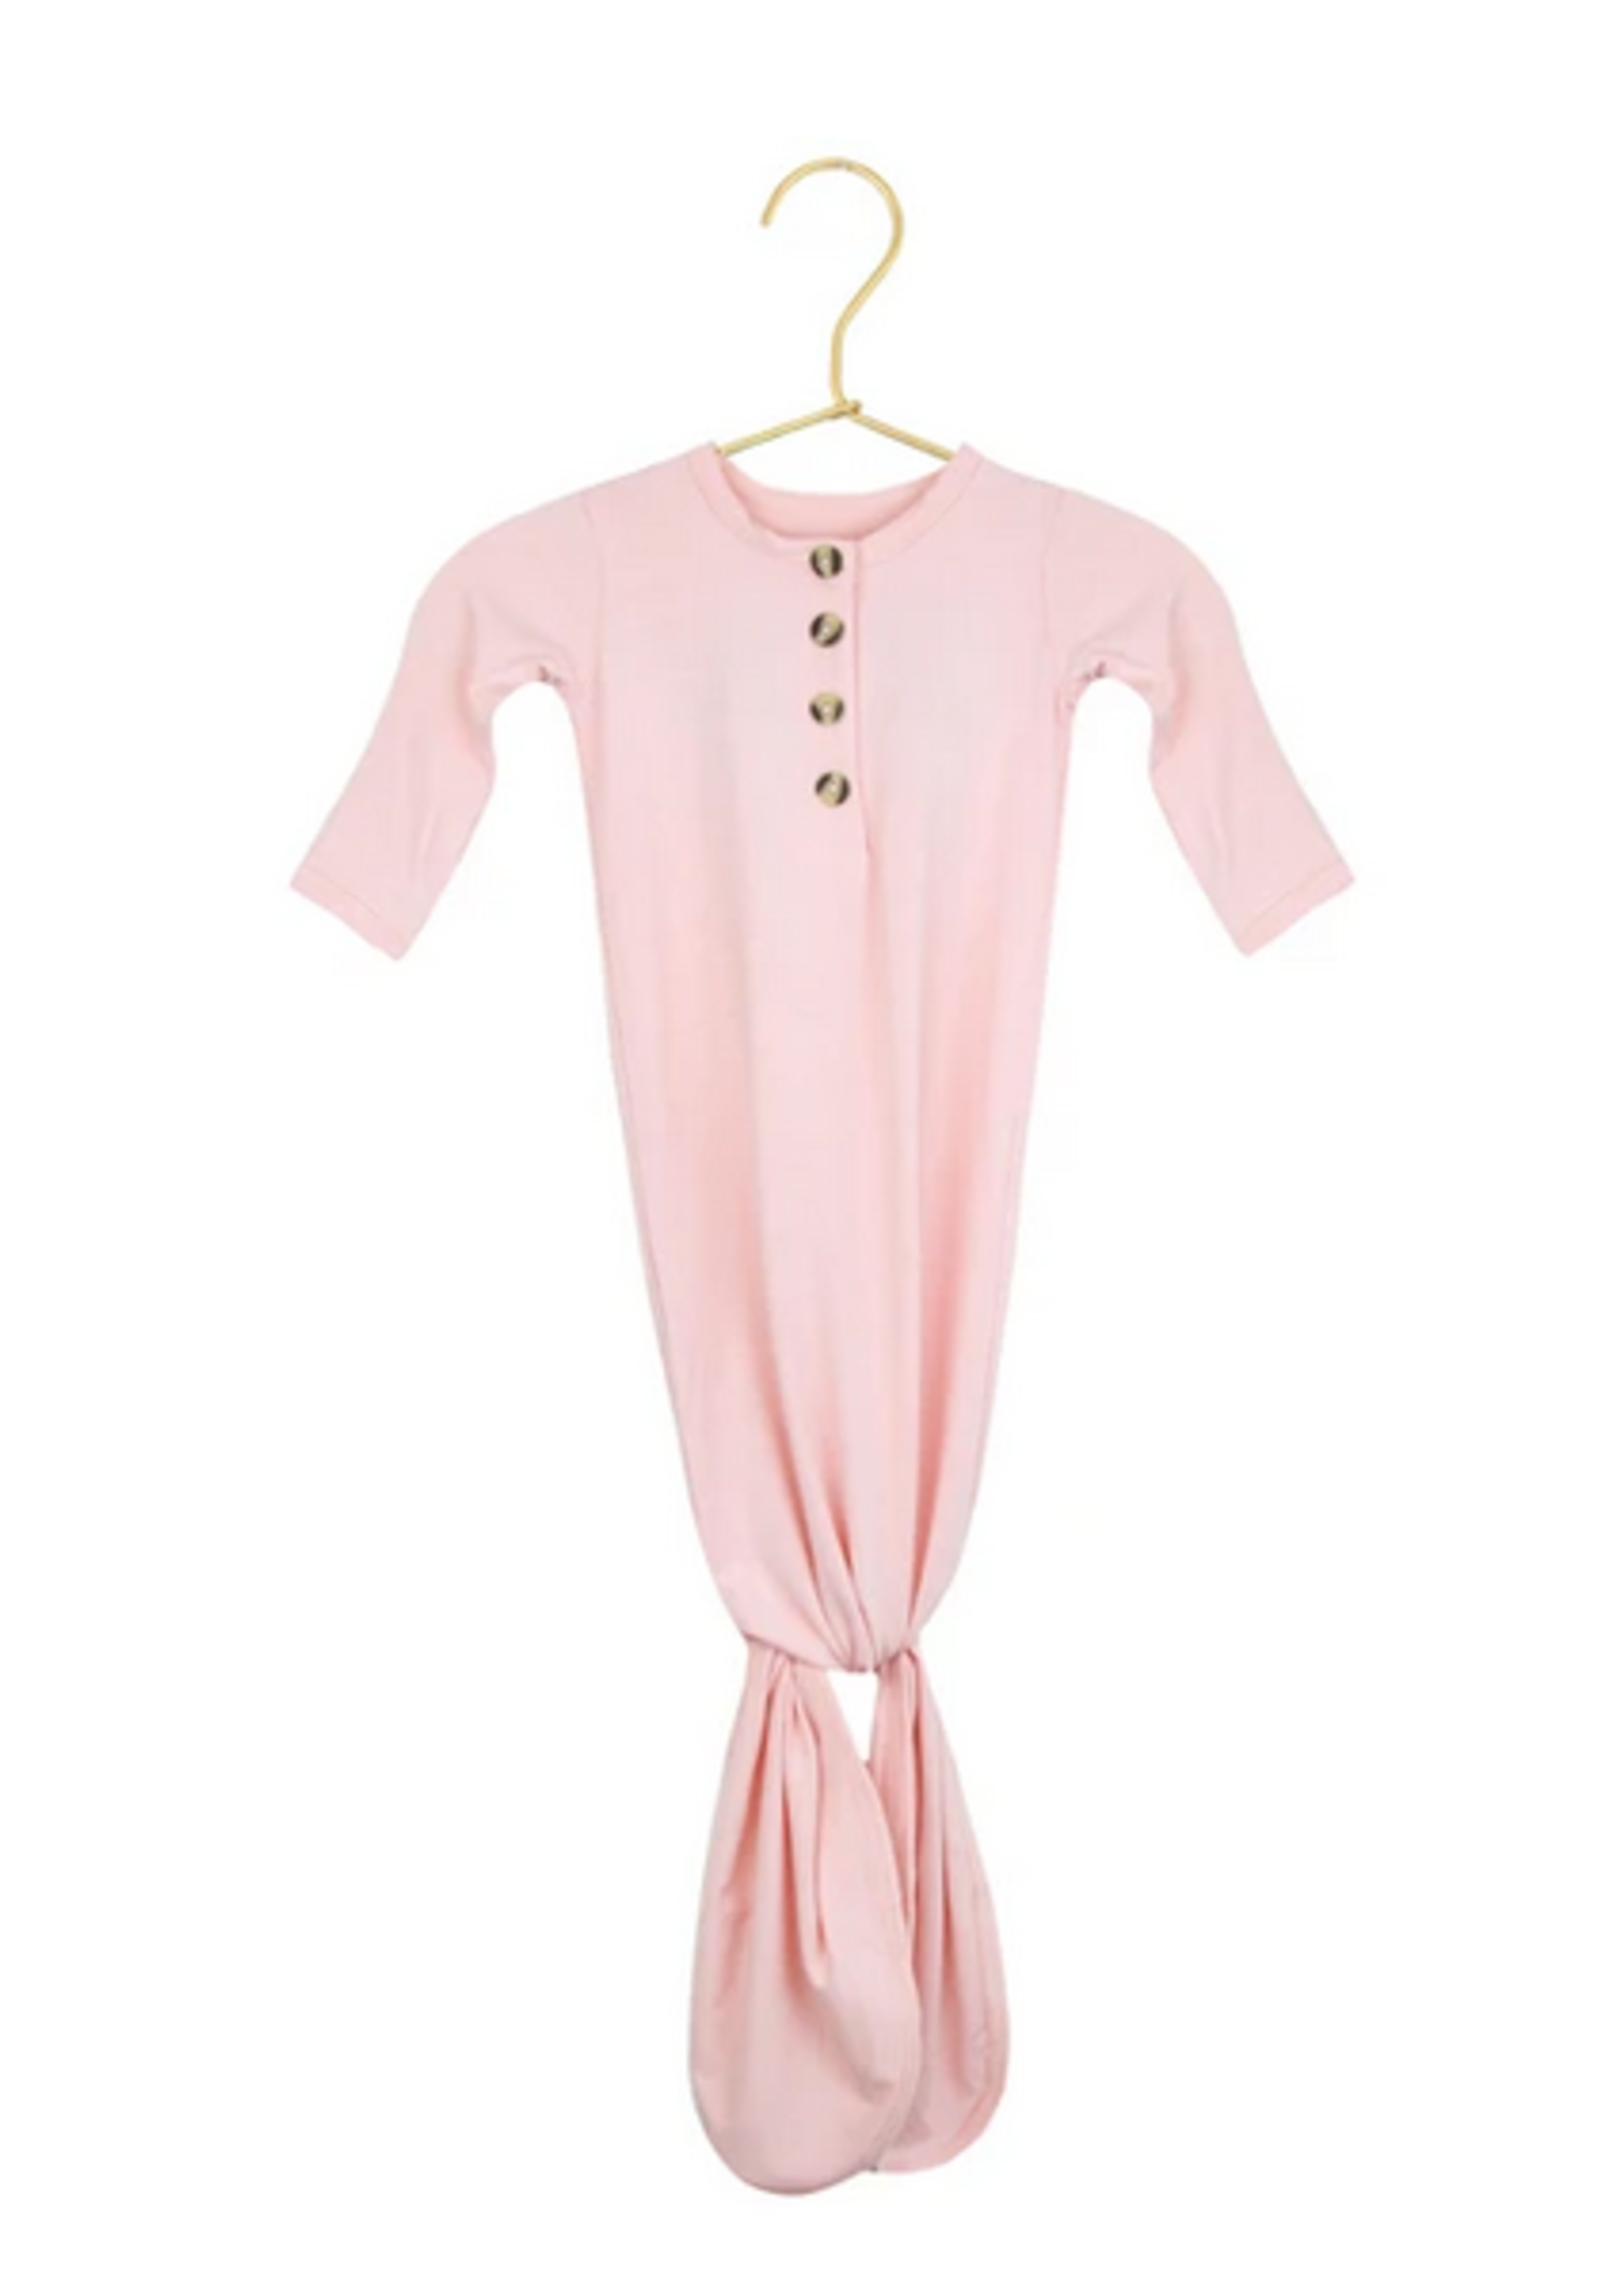 Elitaire Petite Ava Pink Knotted Gown 3-6 Month